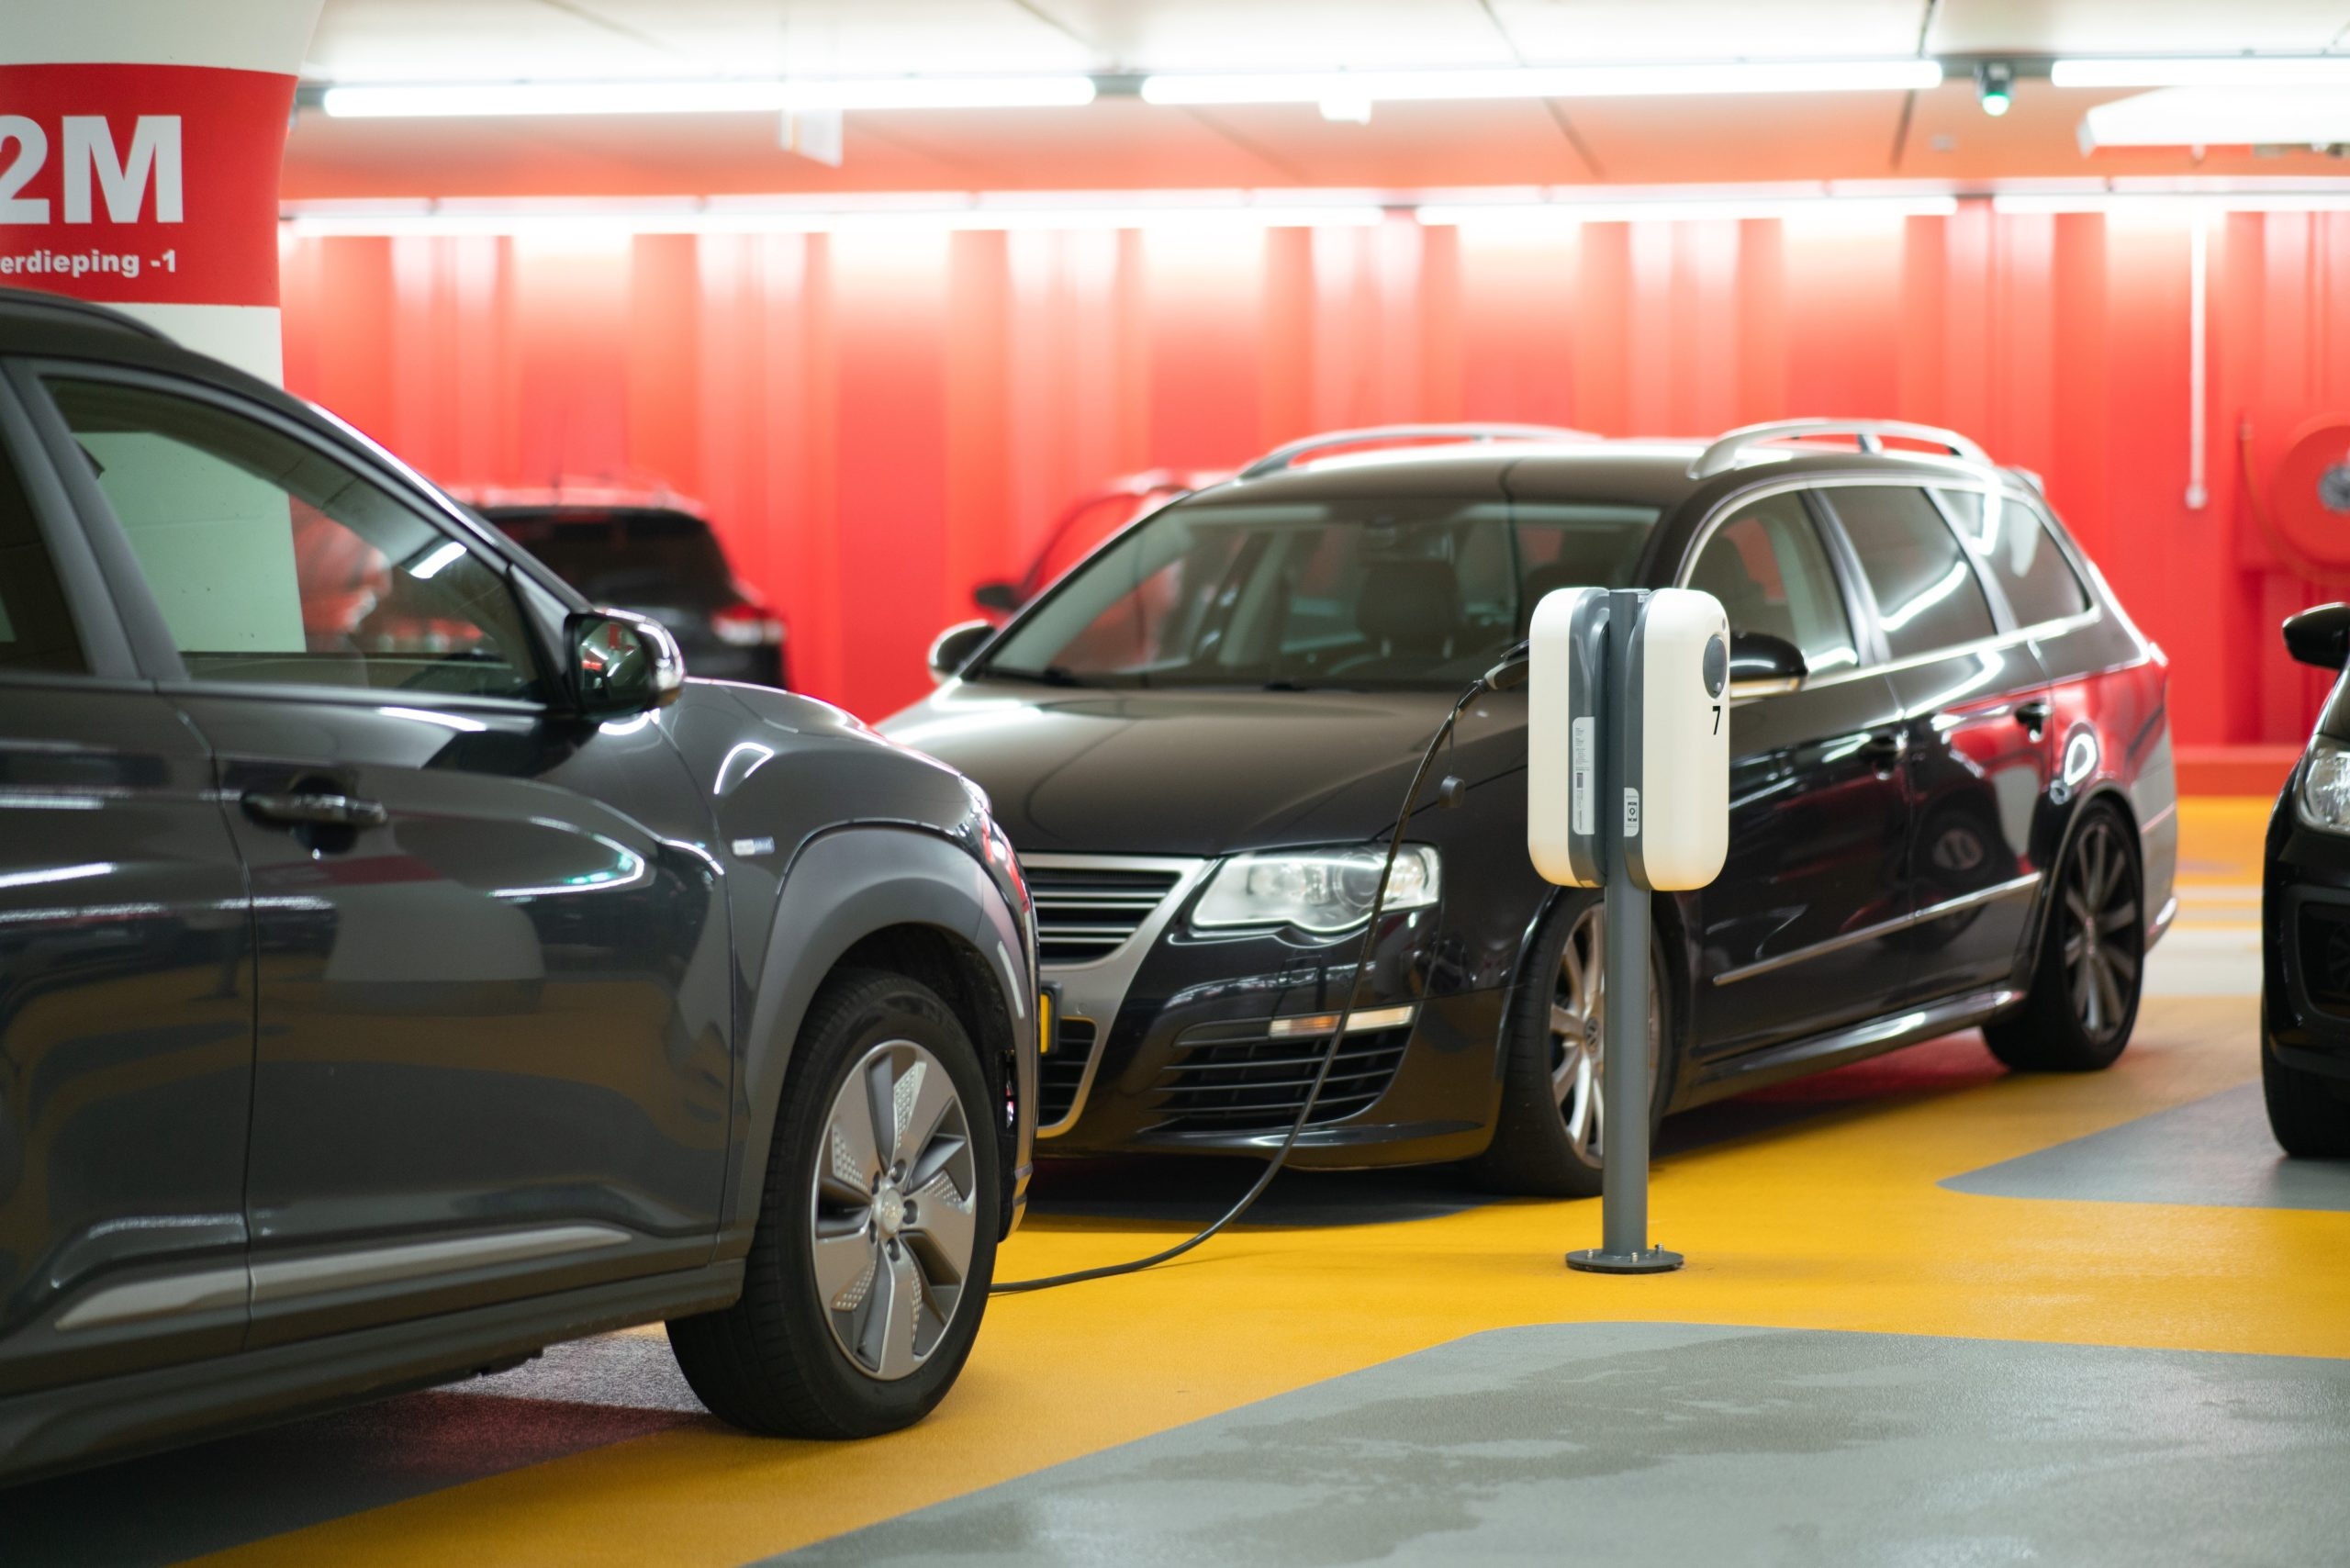 Electric Vehicles: Associated Opportunities for the Sector